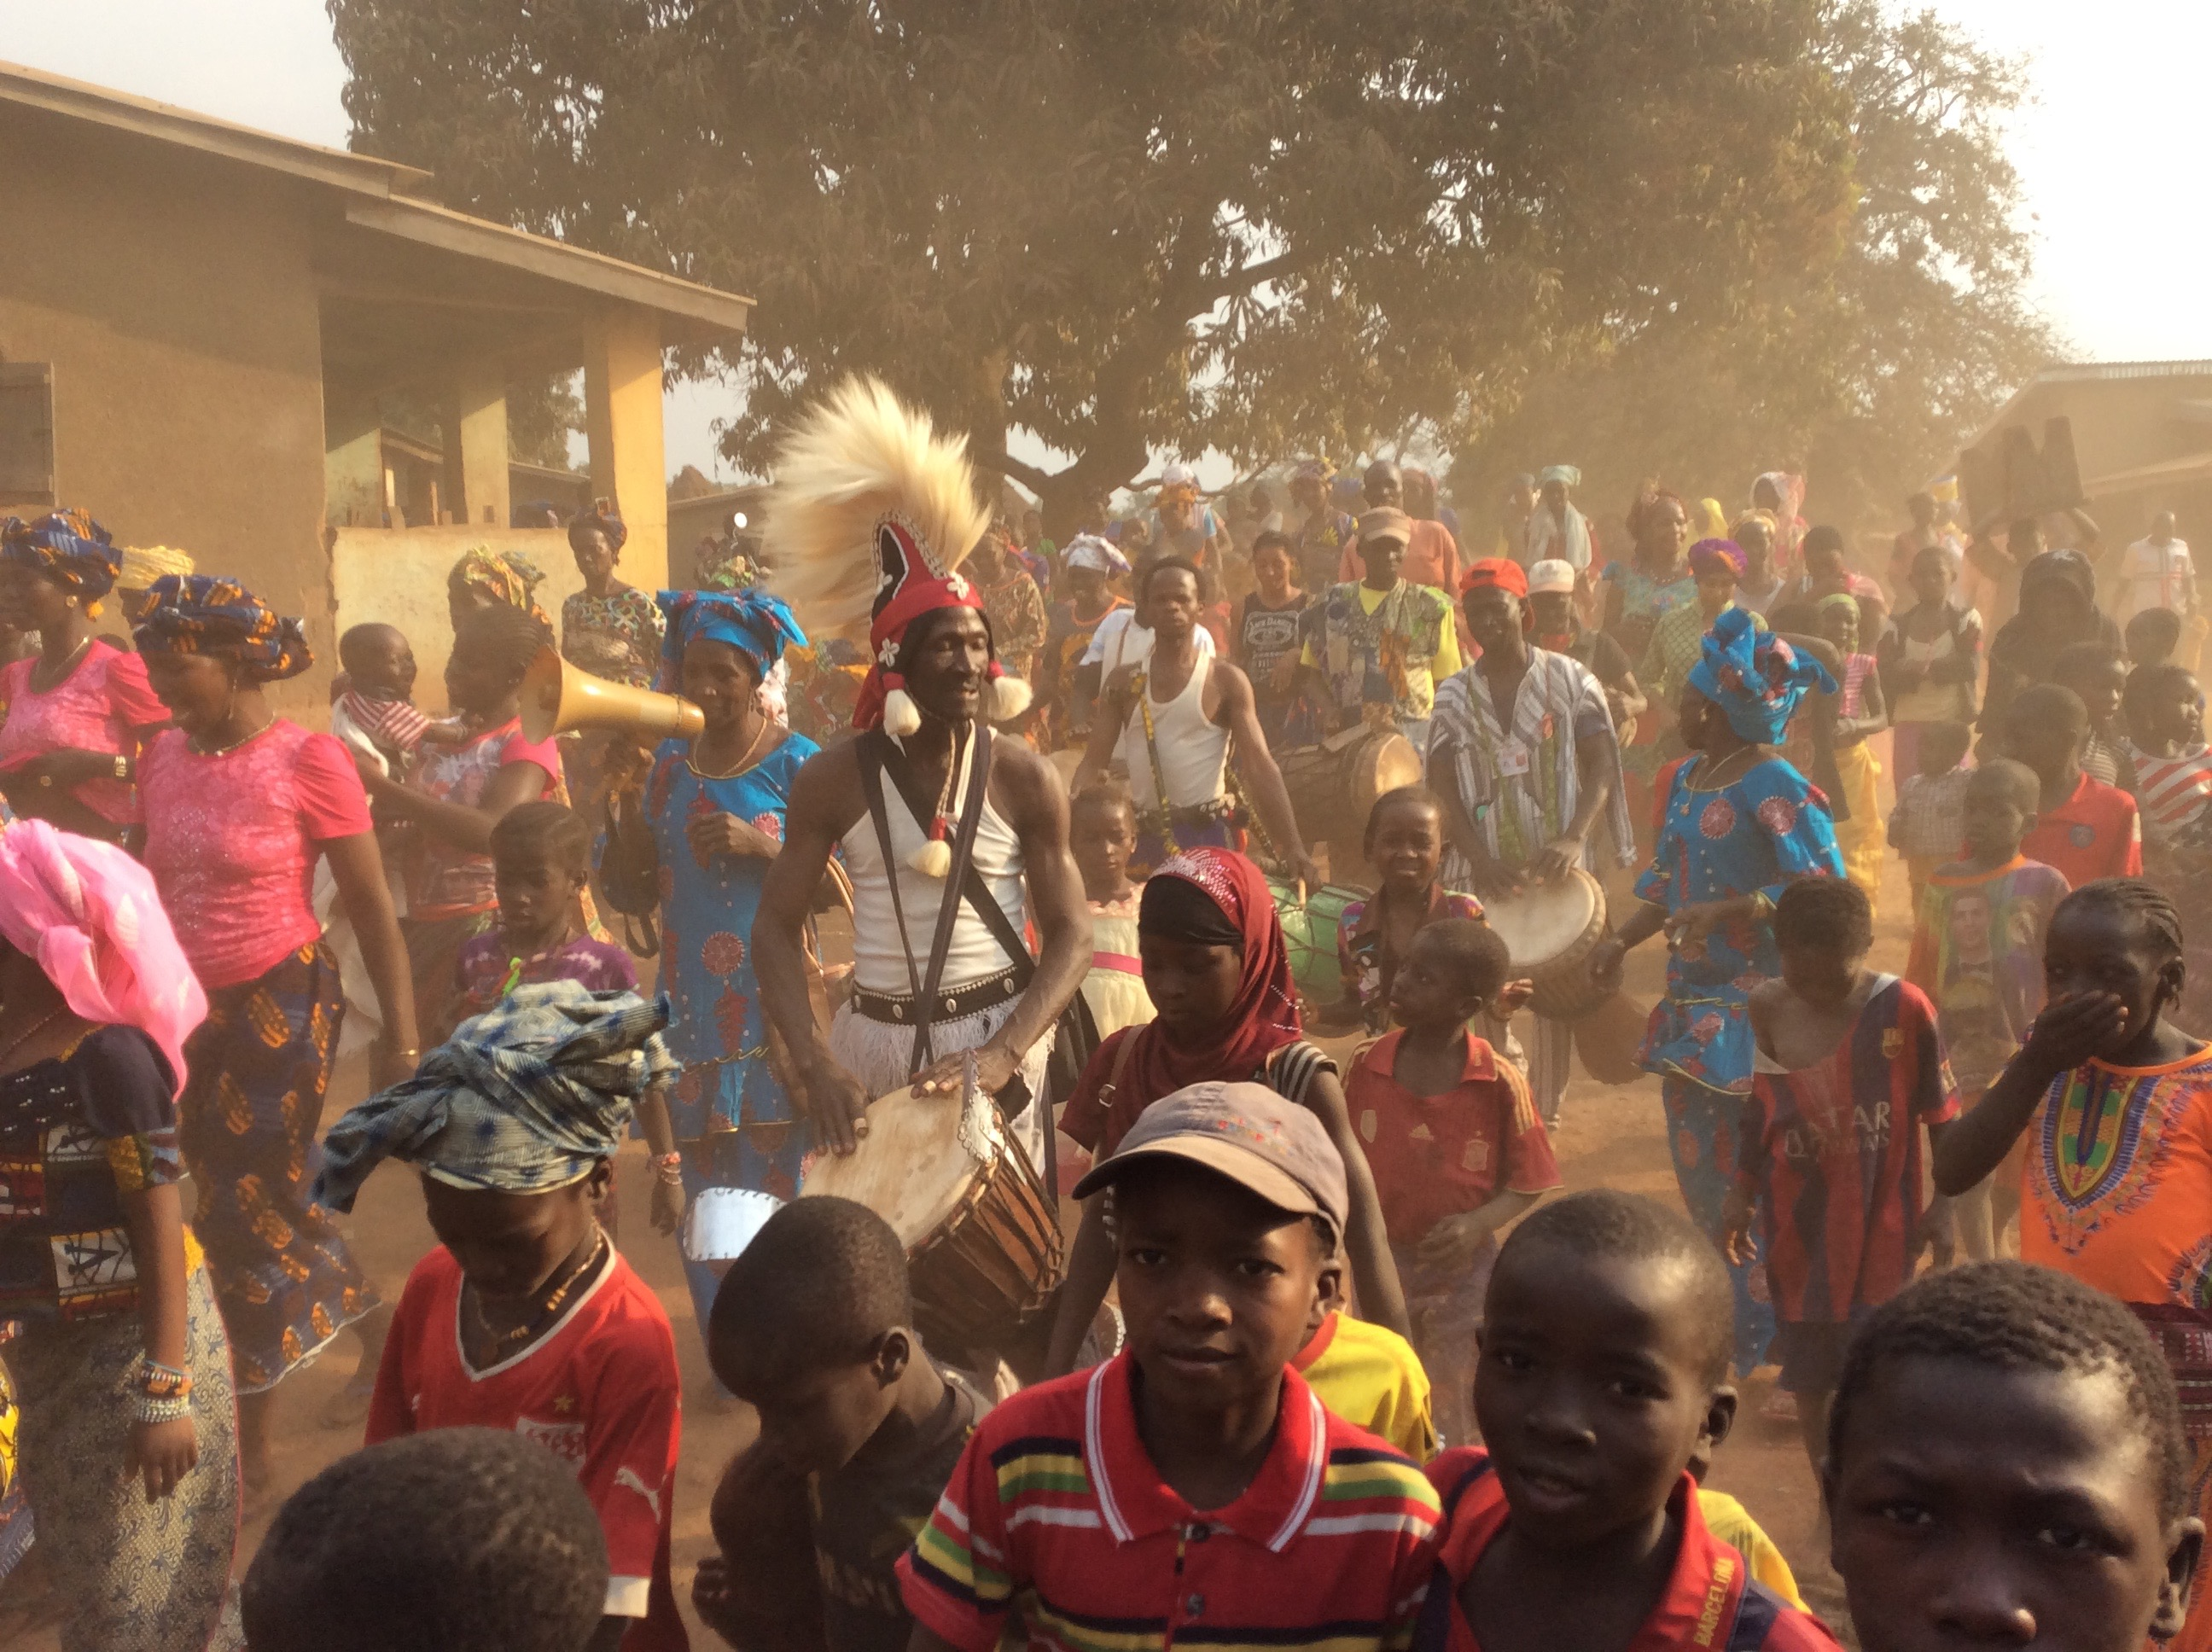 Sayon Camara as the djembefola in his village during a recent celebration of the new wells in the village.